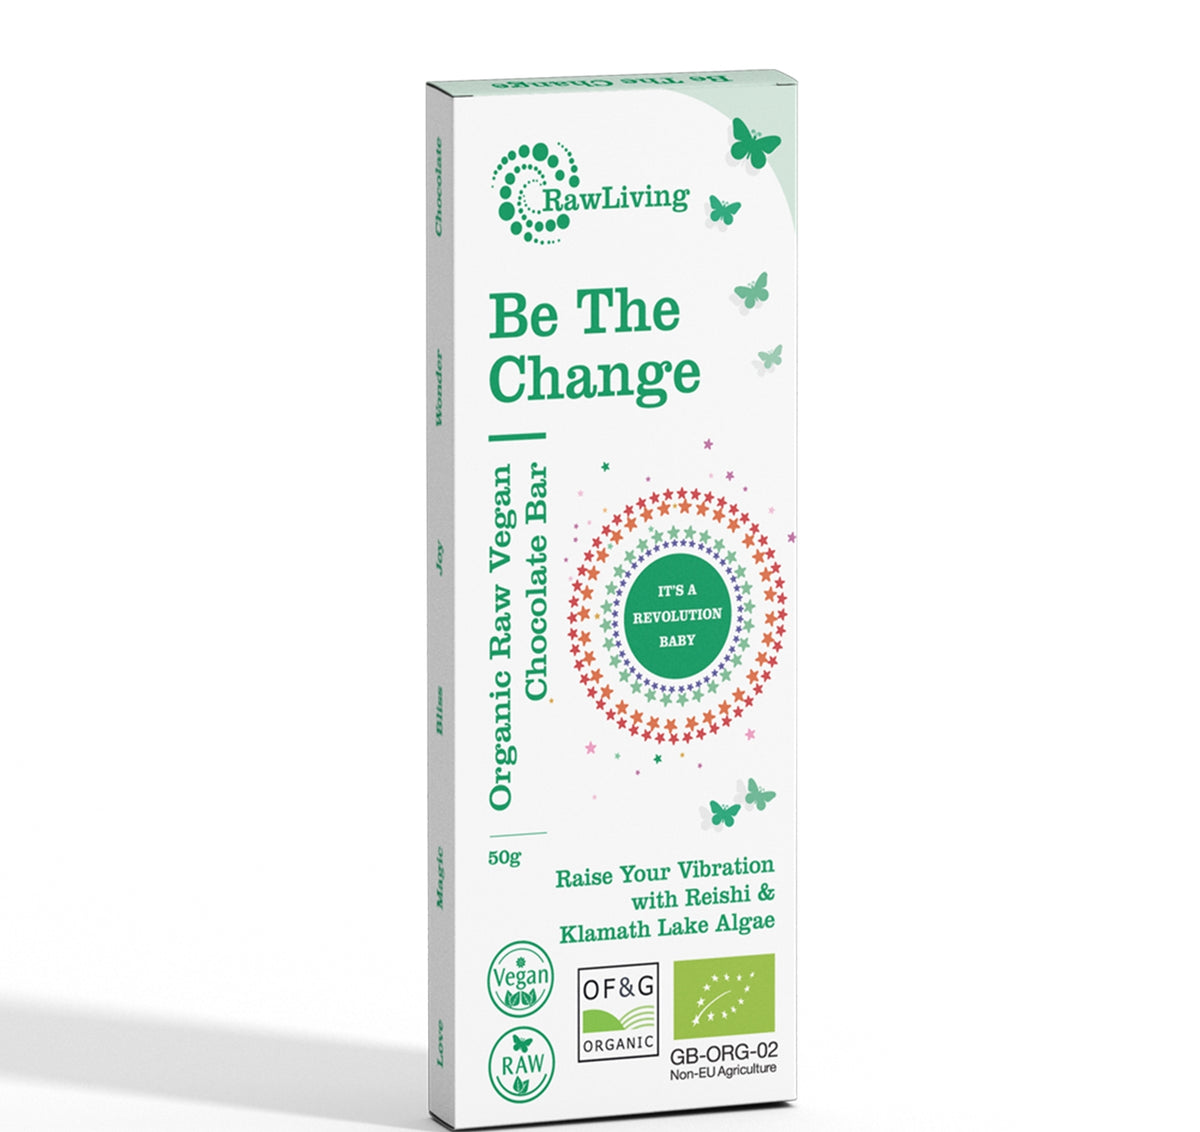 Be the Change Raw Chocolate Bar (50g)